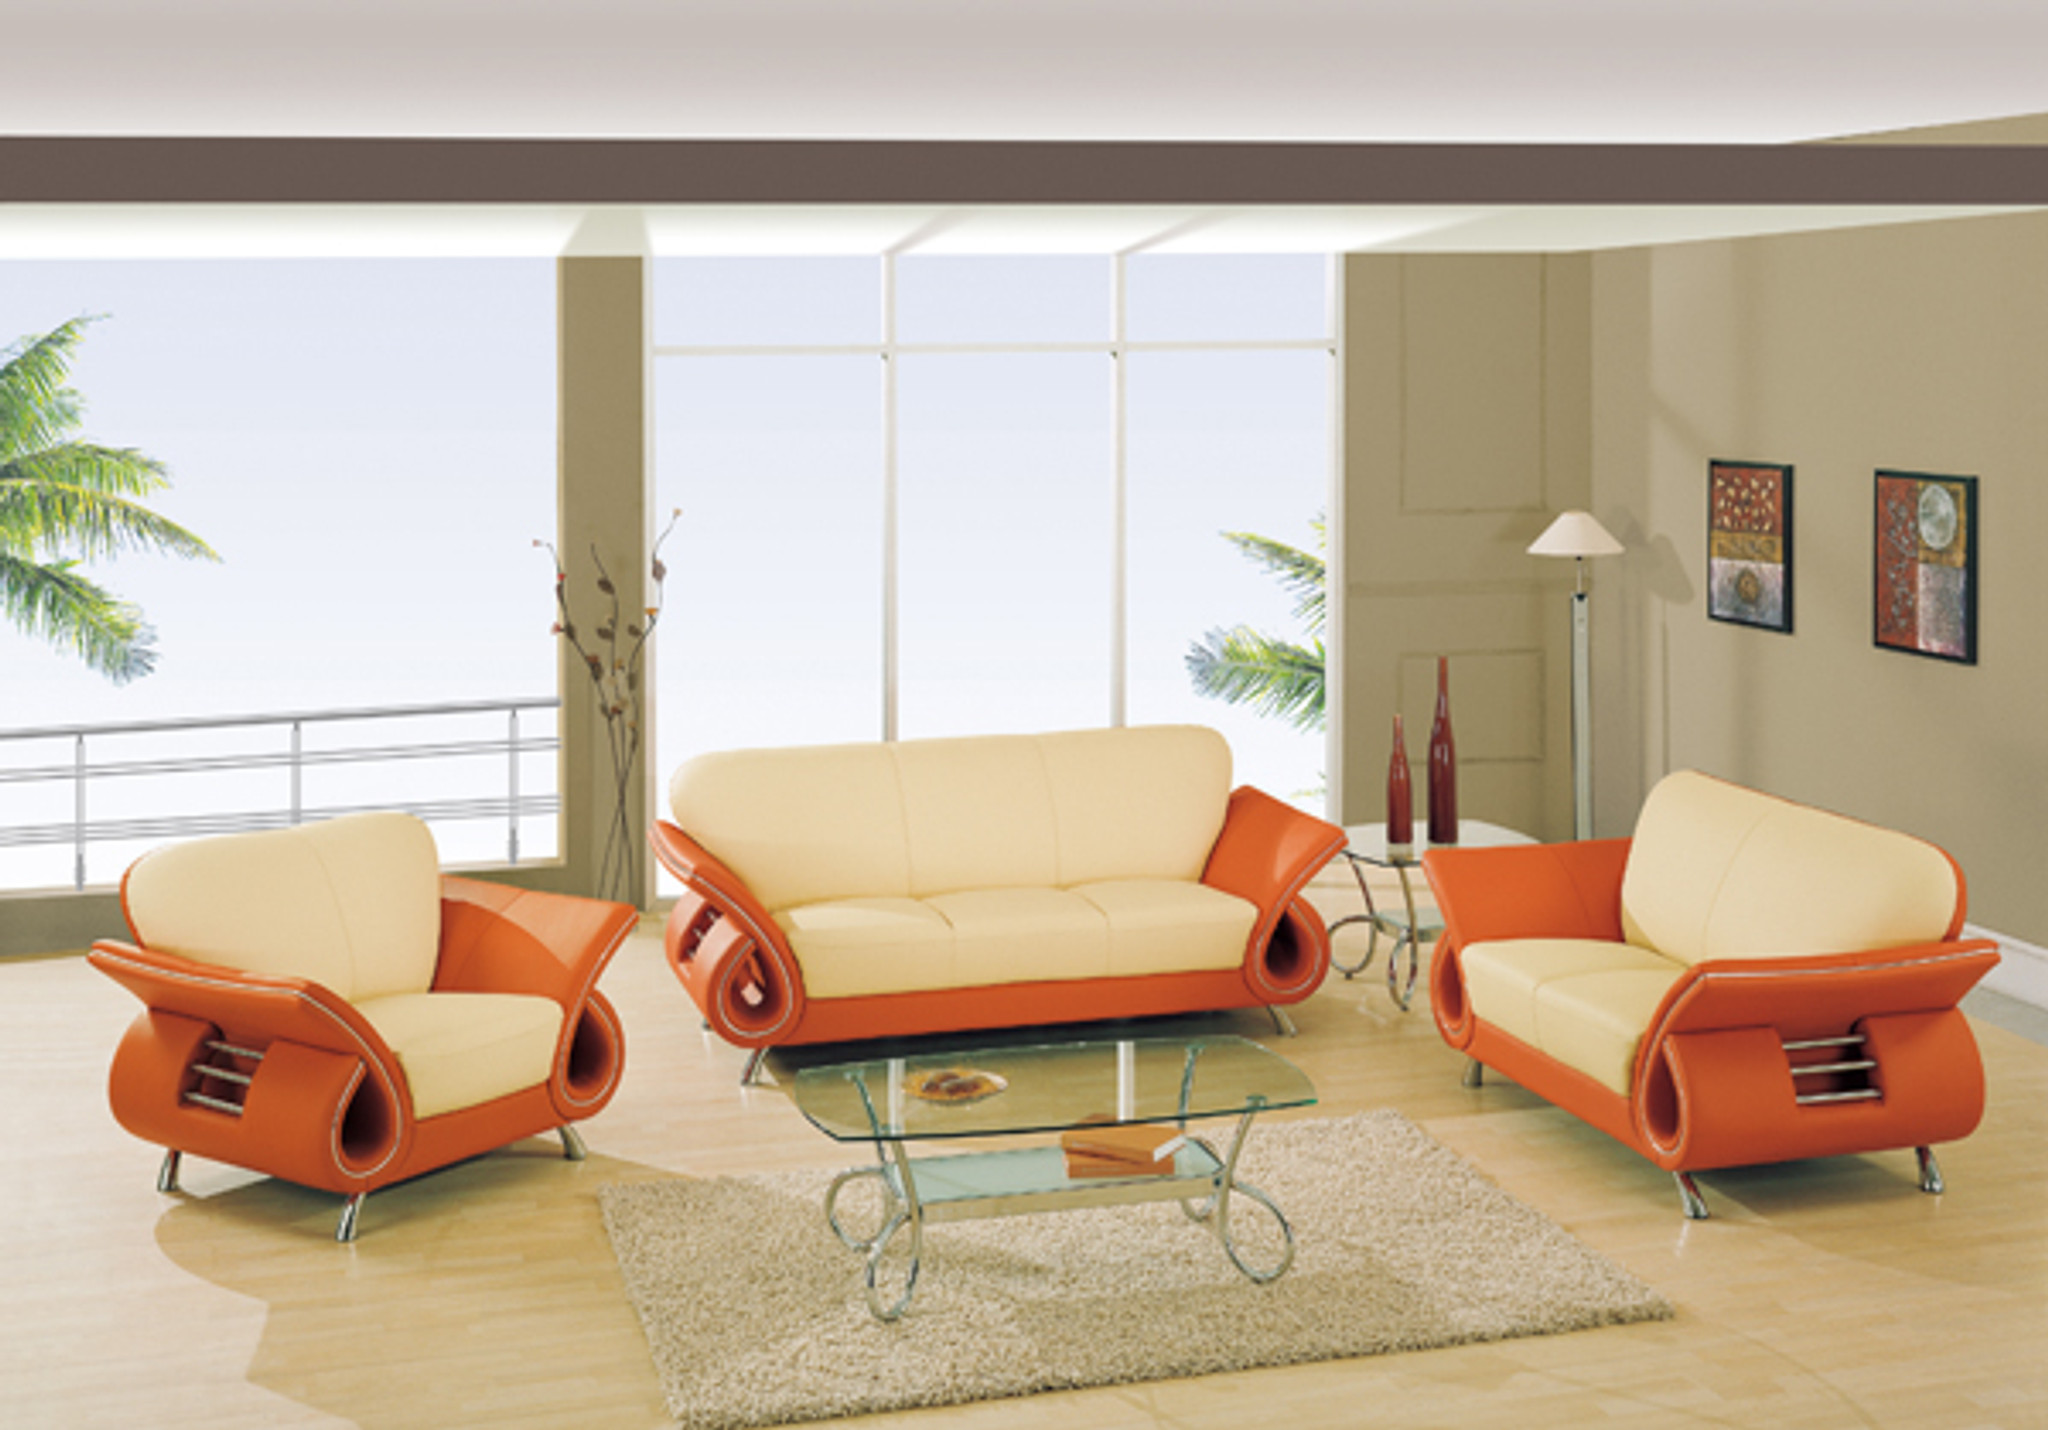 KASSA MALL HOME FURNITURE - U559 Beige/Orange - Beige/Orange Leather ...